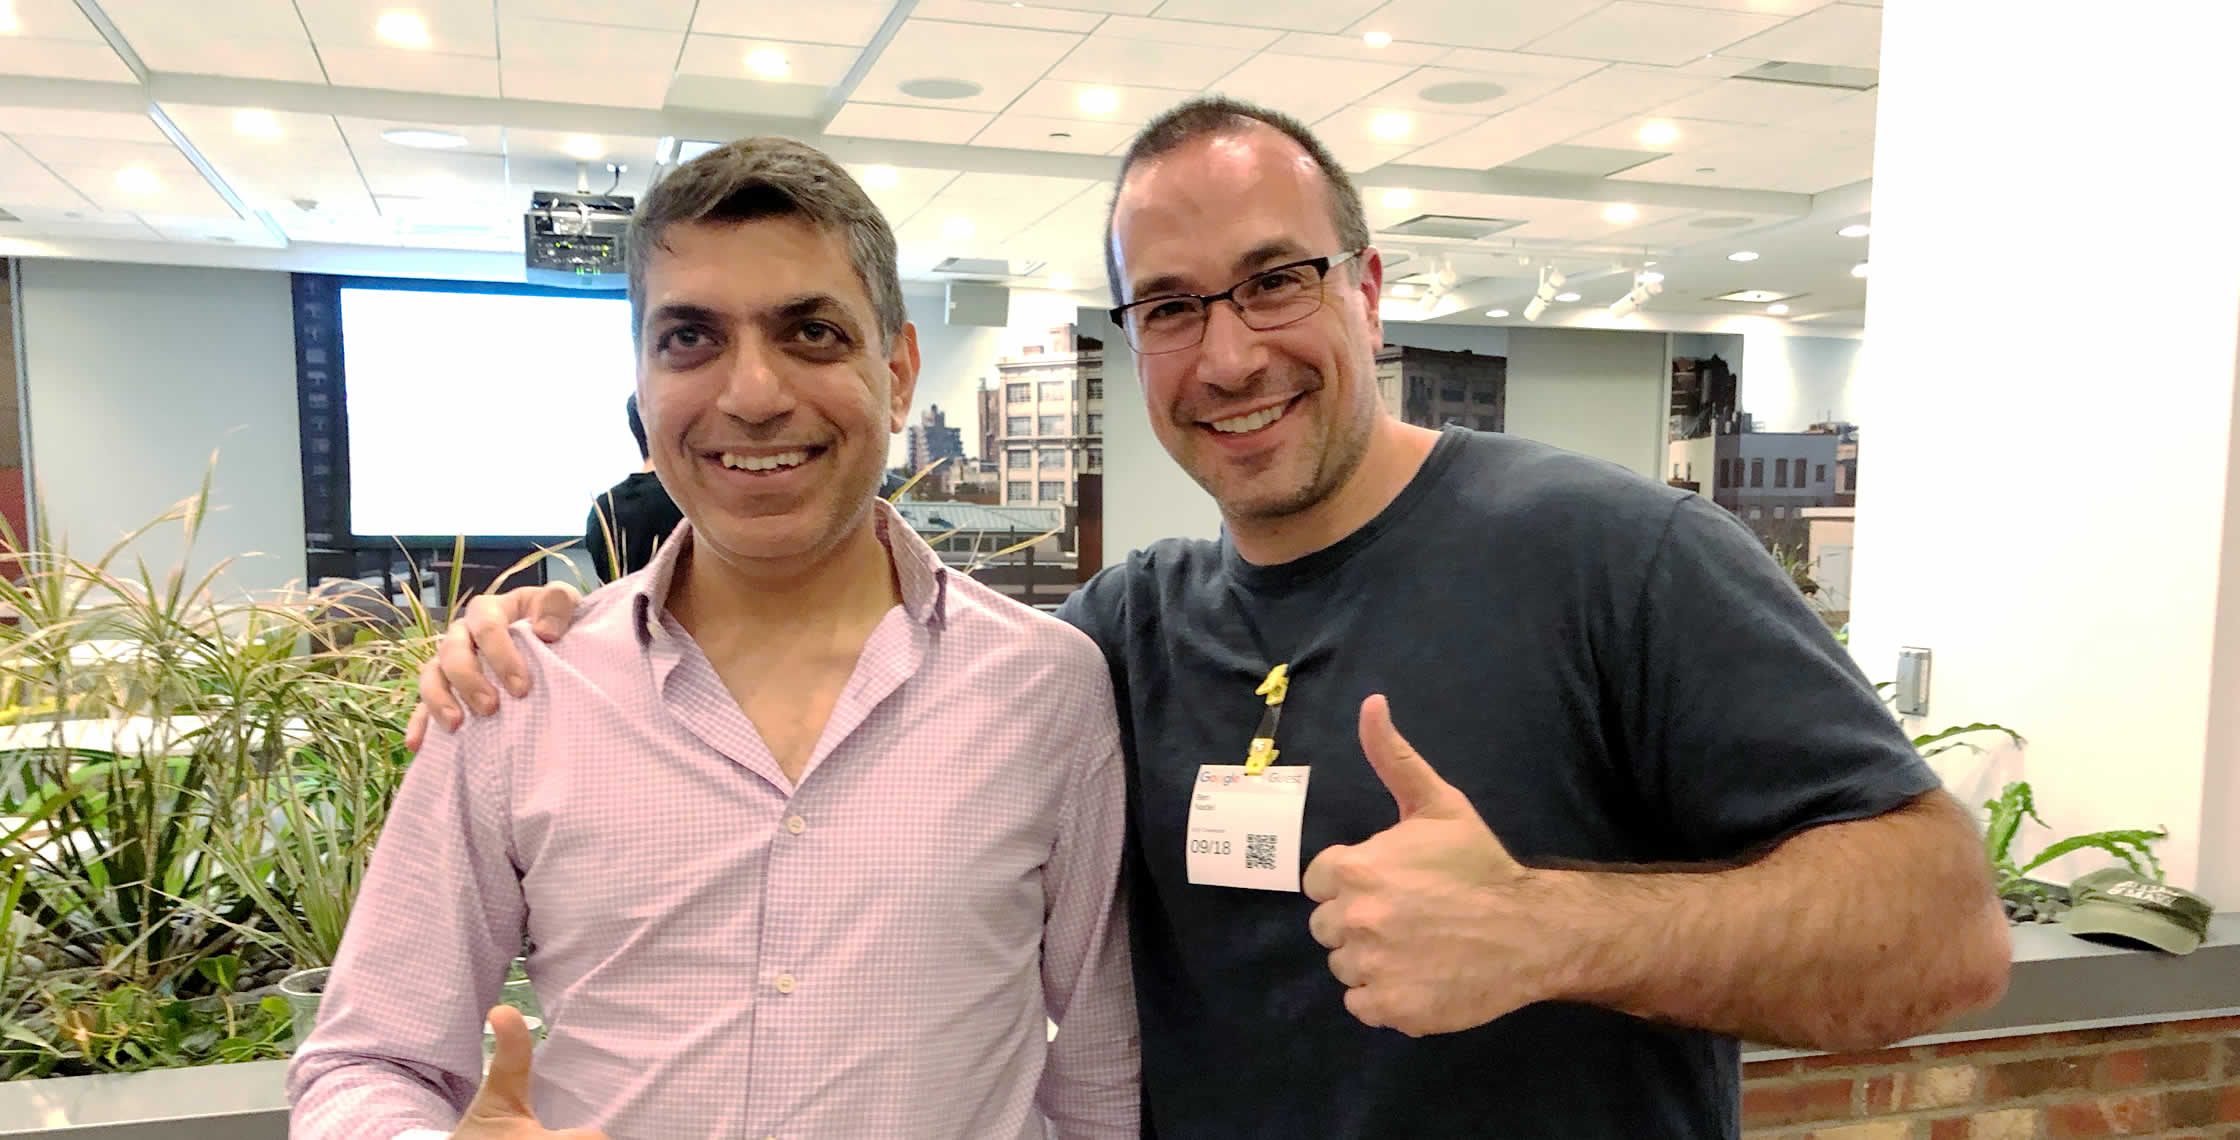 Ben Nadel at the Angular NYC Meetup (Sep. 2018) with: Akshay Nihalaney